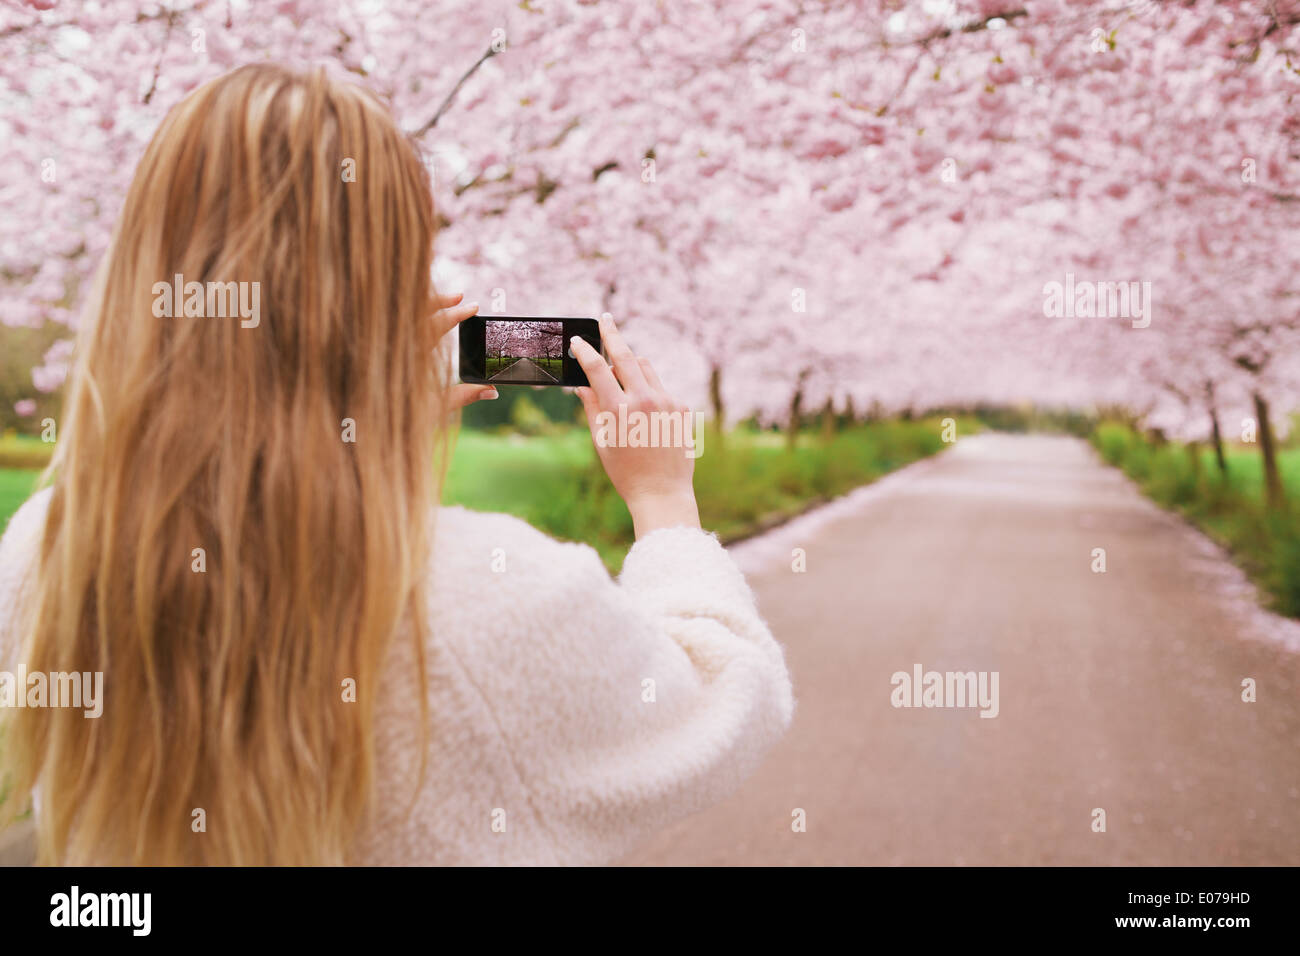 Young woman using her cell phone to capture images of the path and cherry blossoms tree at park. Rear view image of young female - Stock Image